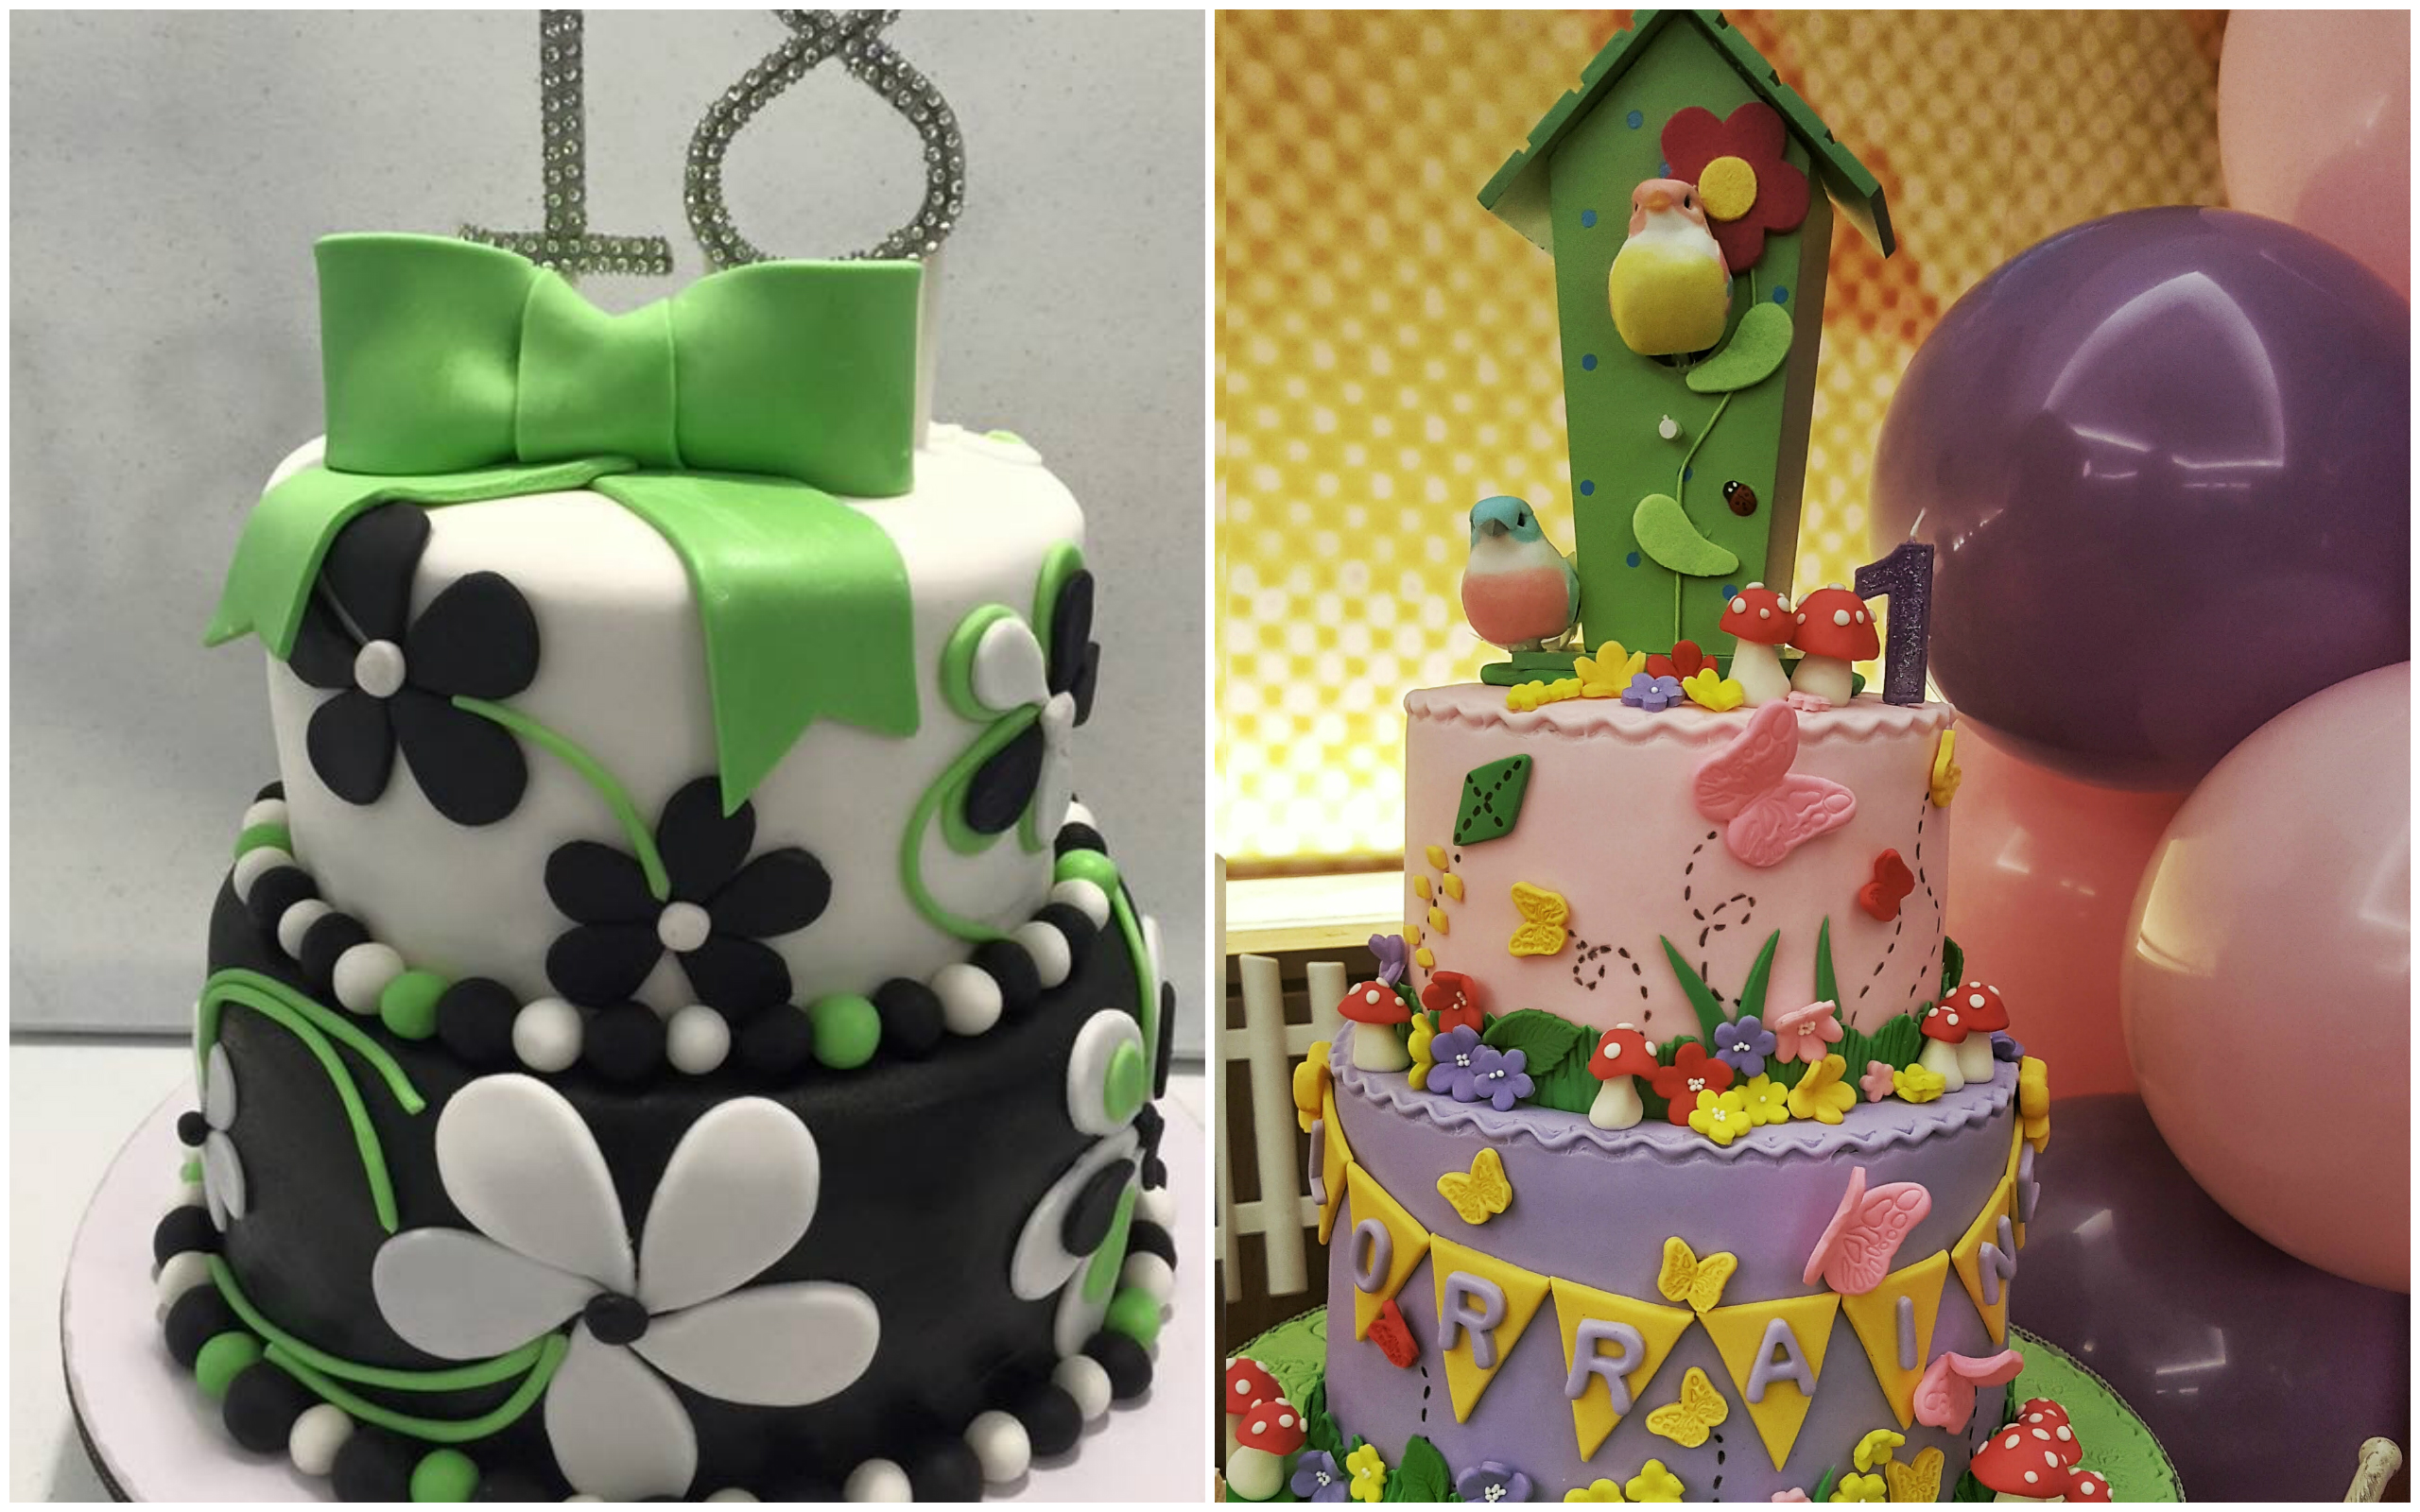 12+ Pretty Extraordinary Cakes That Are So Lovely To Look